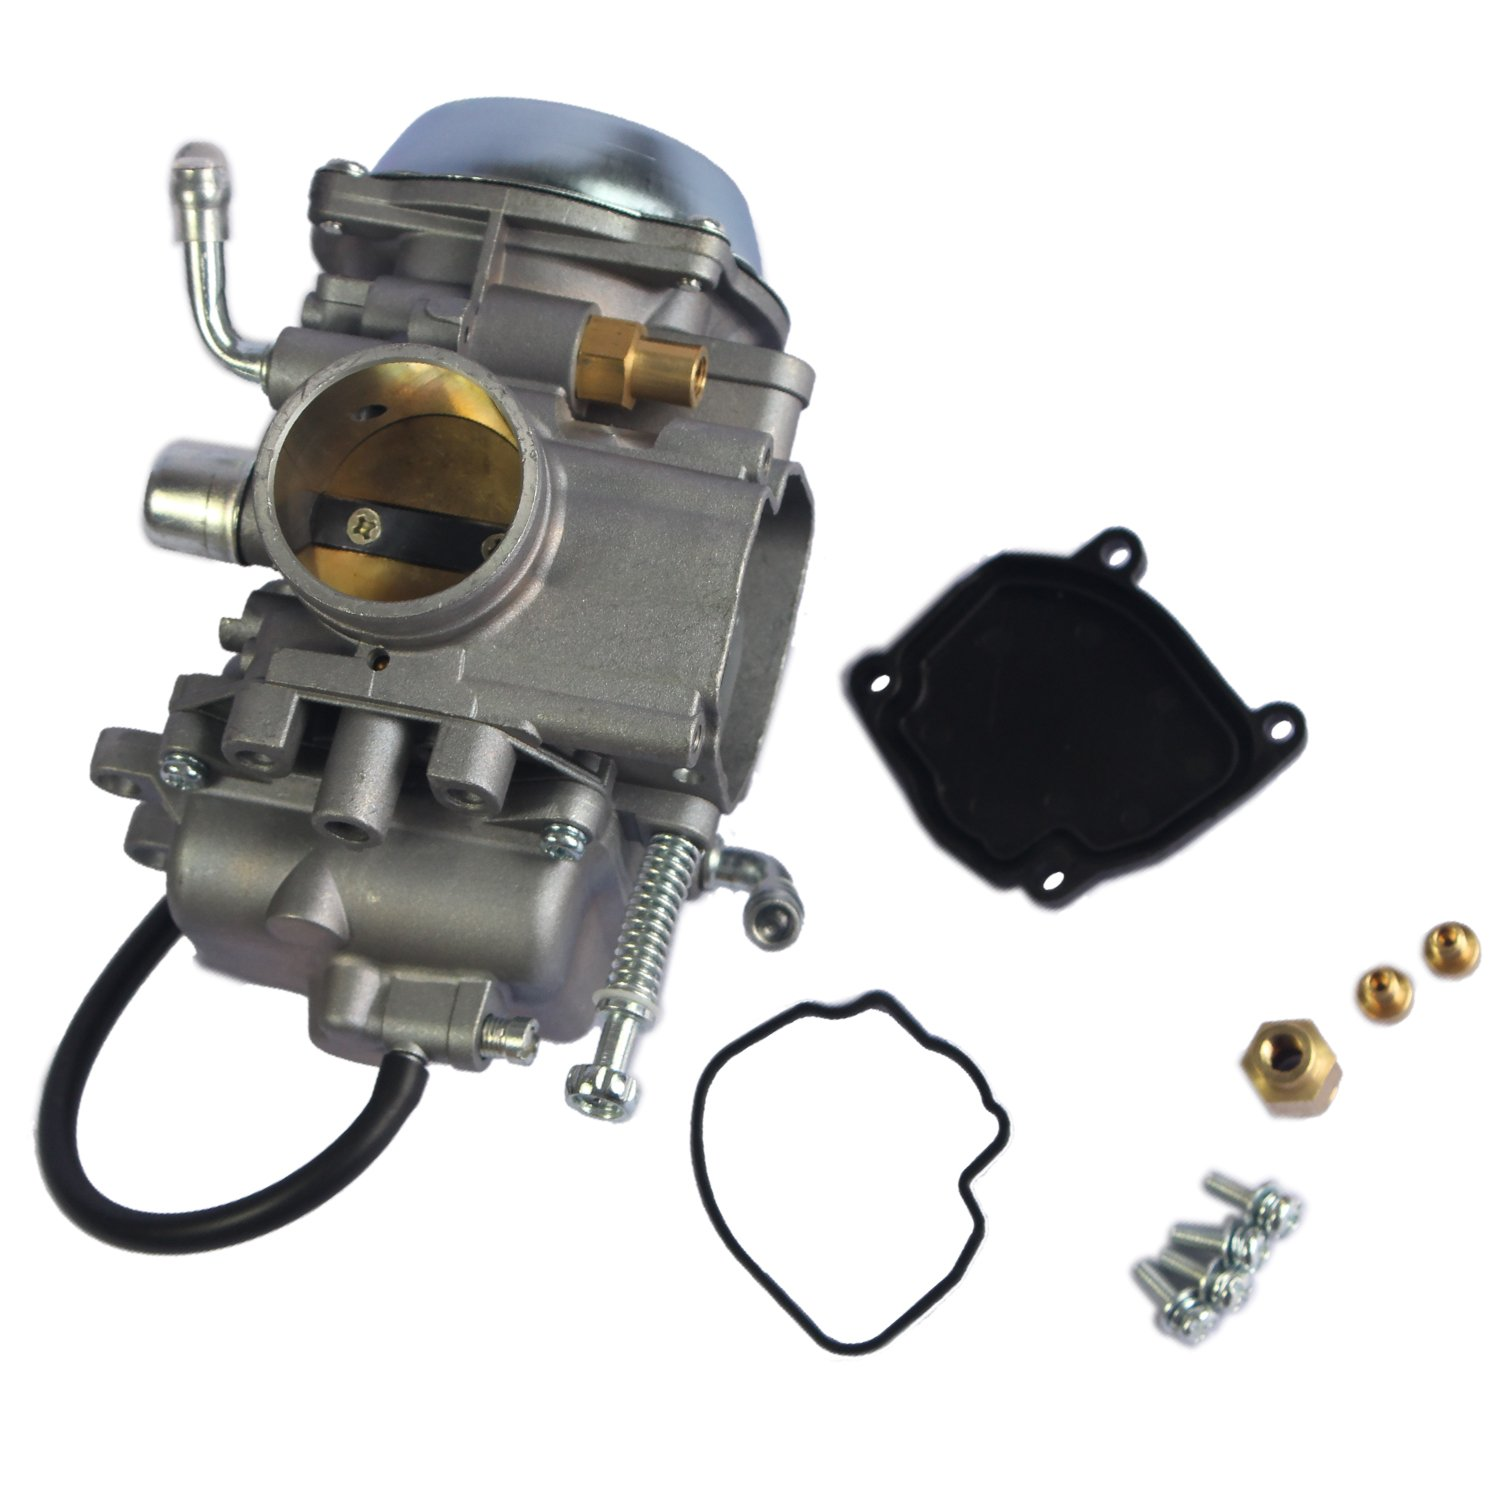 JDMSPEED New PD34J Carburetor For Polaris Sportsman 700 4x4 ATV Quad Carb 2002-2006